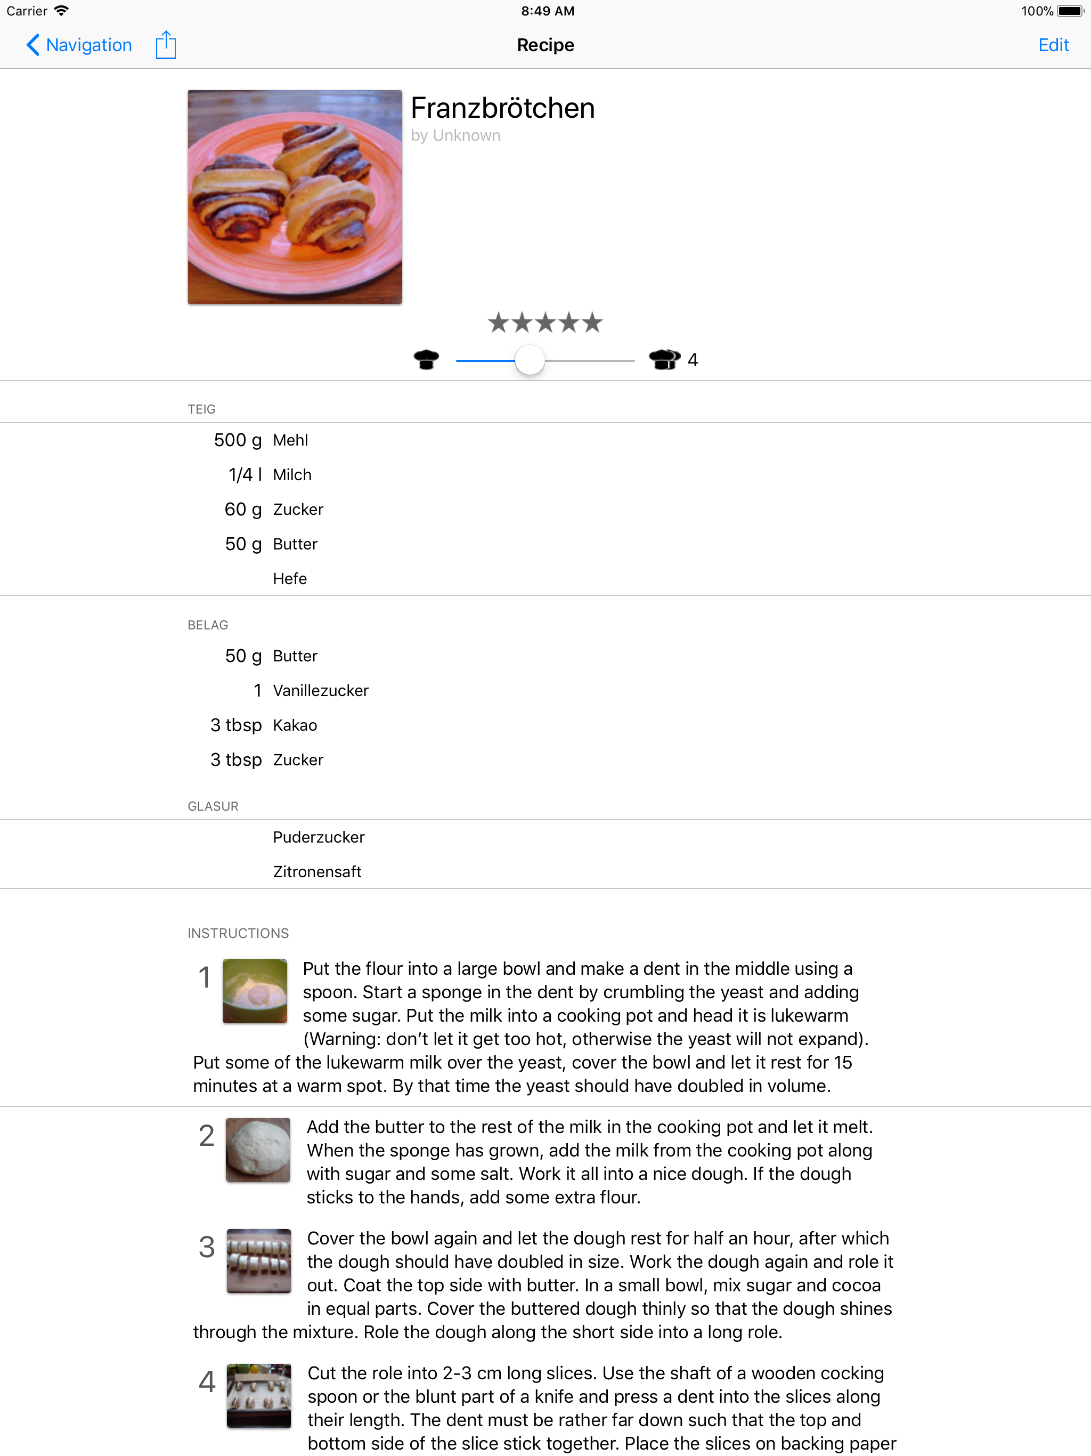 My Favorite Recipes iPad Pro Layout